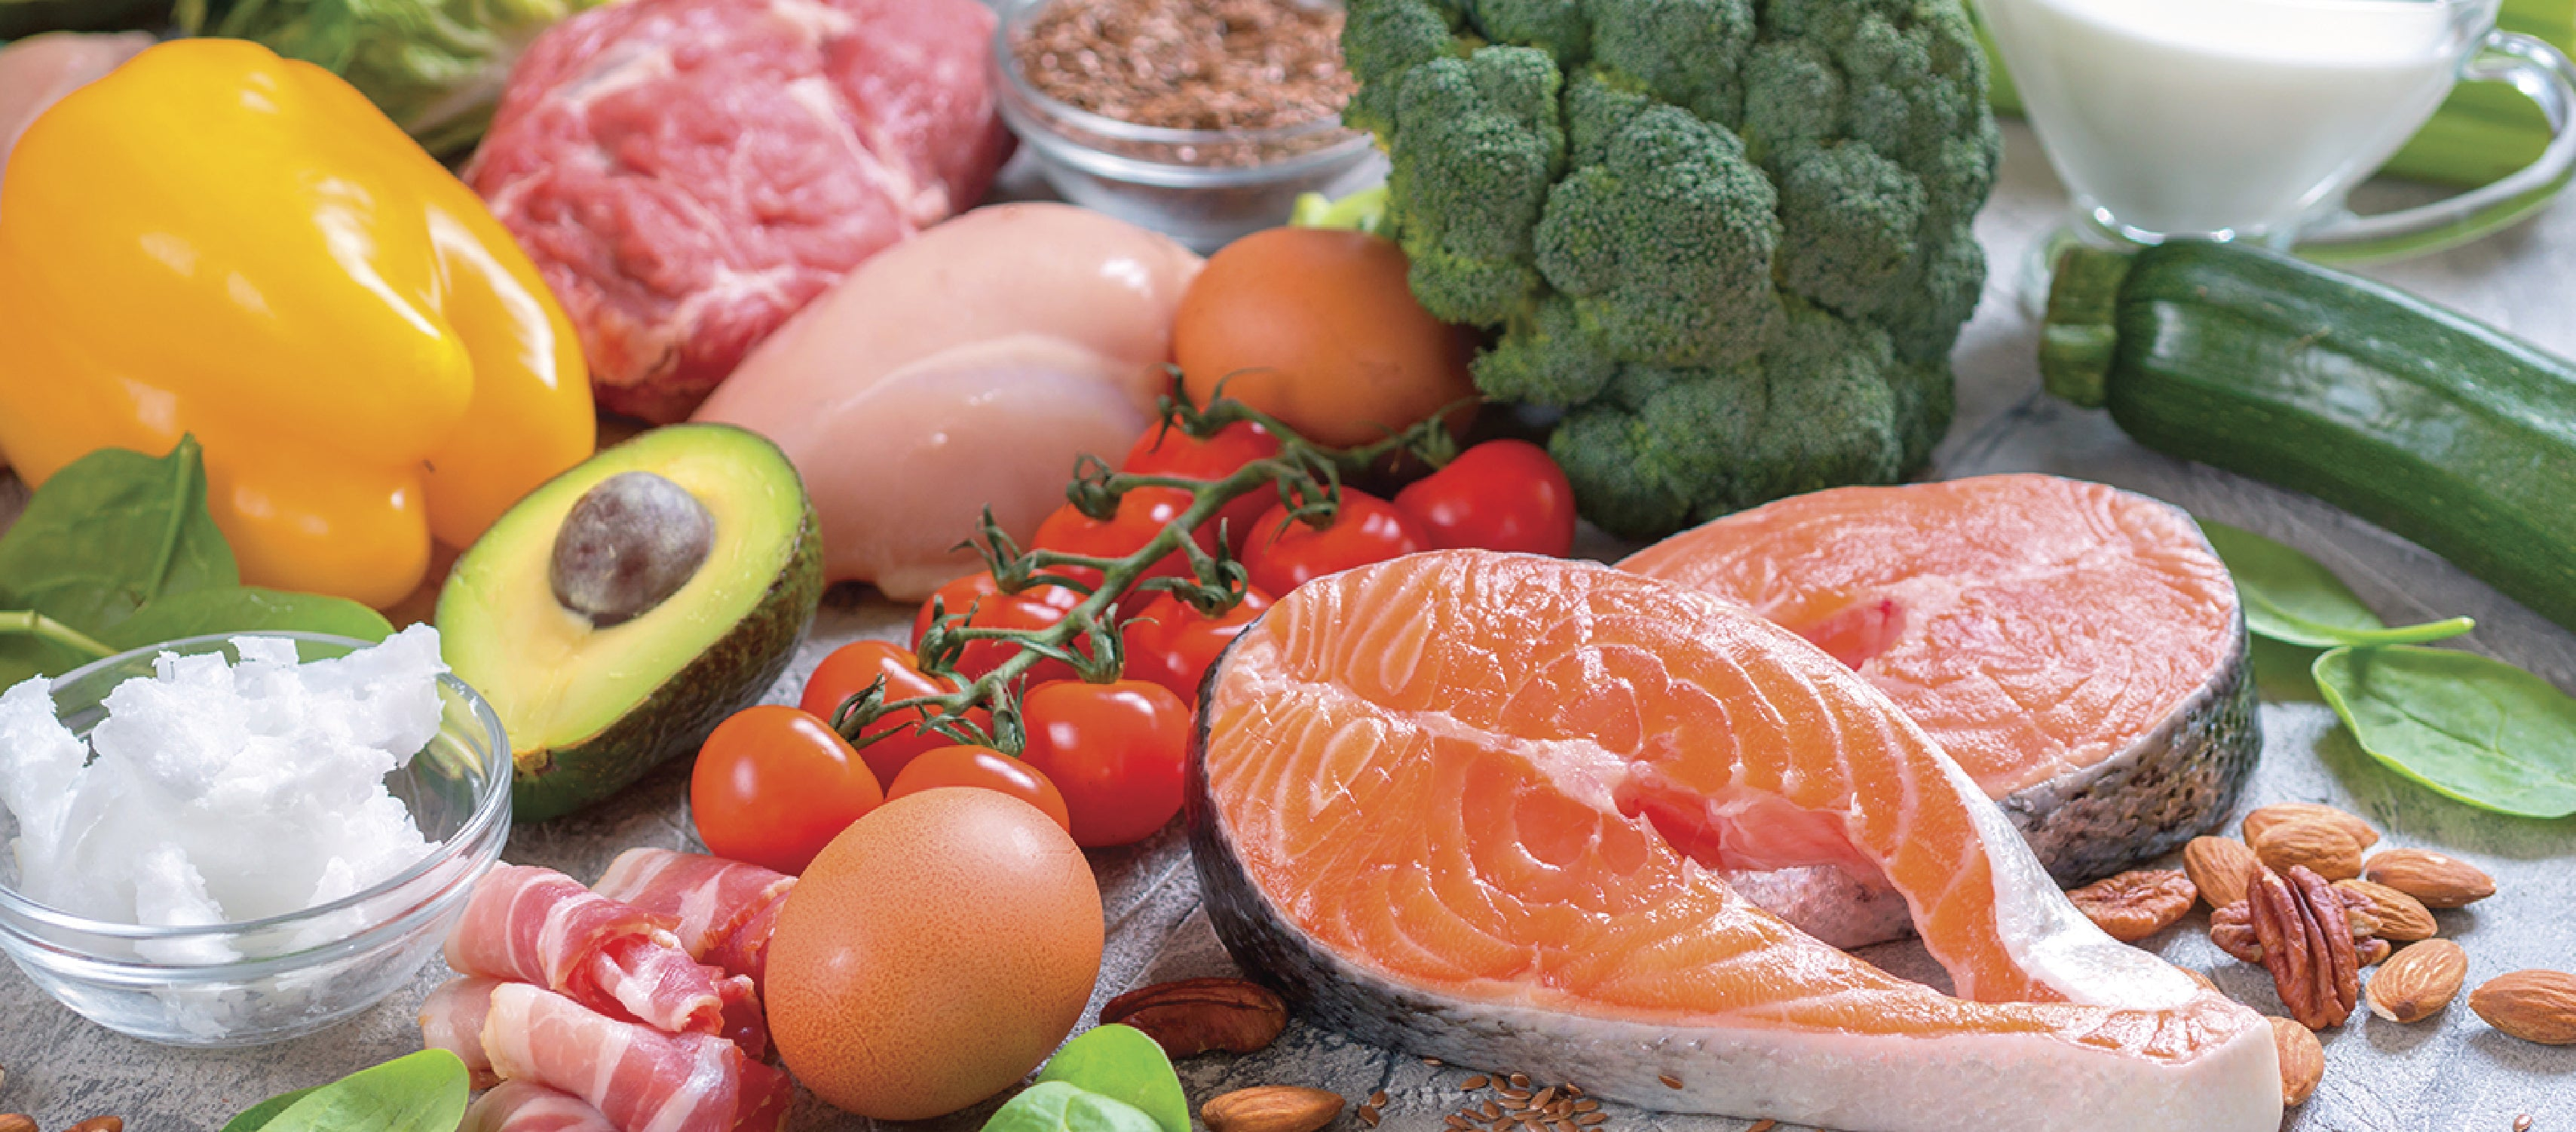 Best foods to east after Bariatric surgery like salmon and brocolli